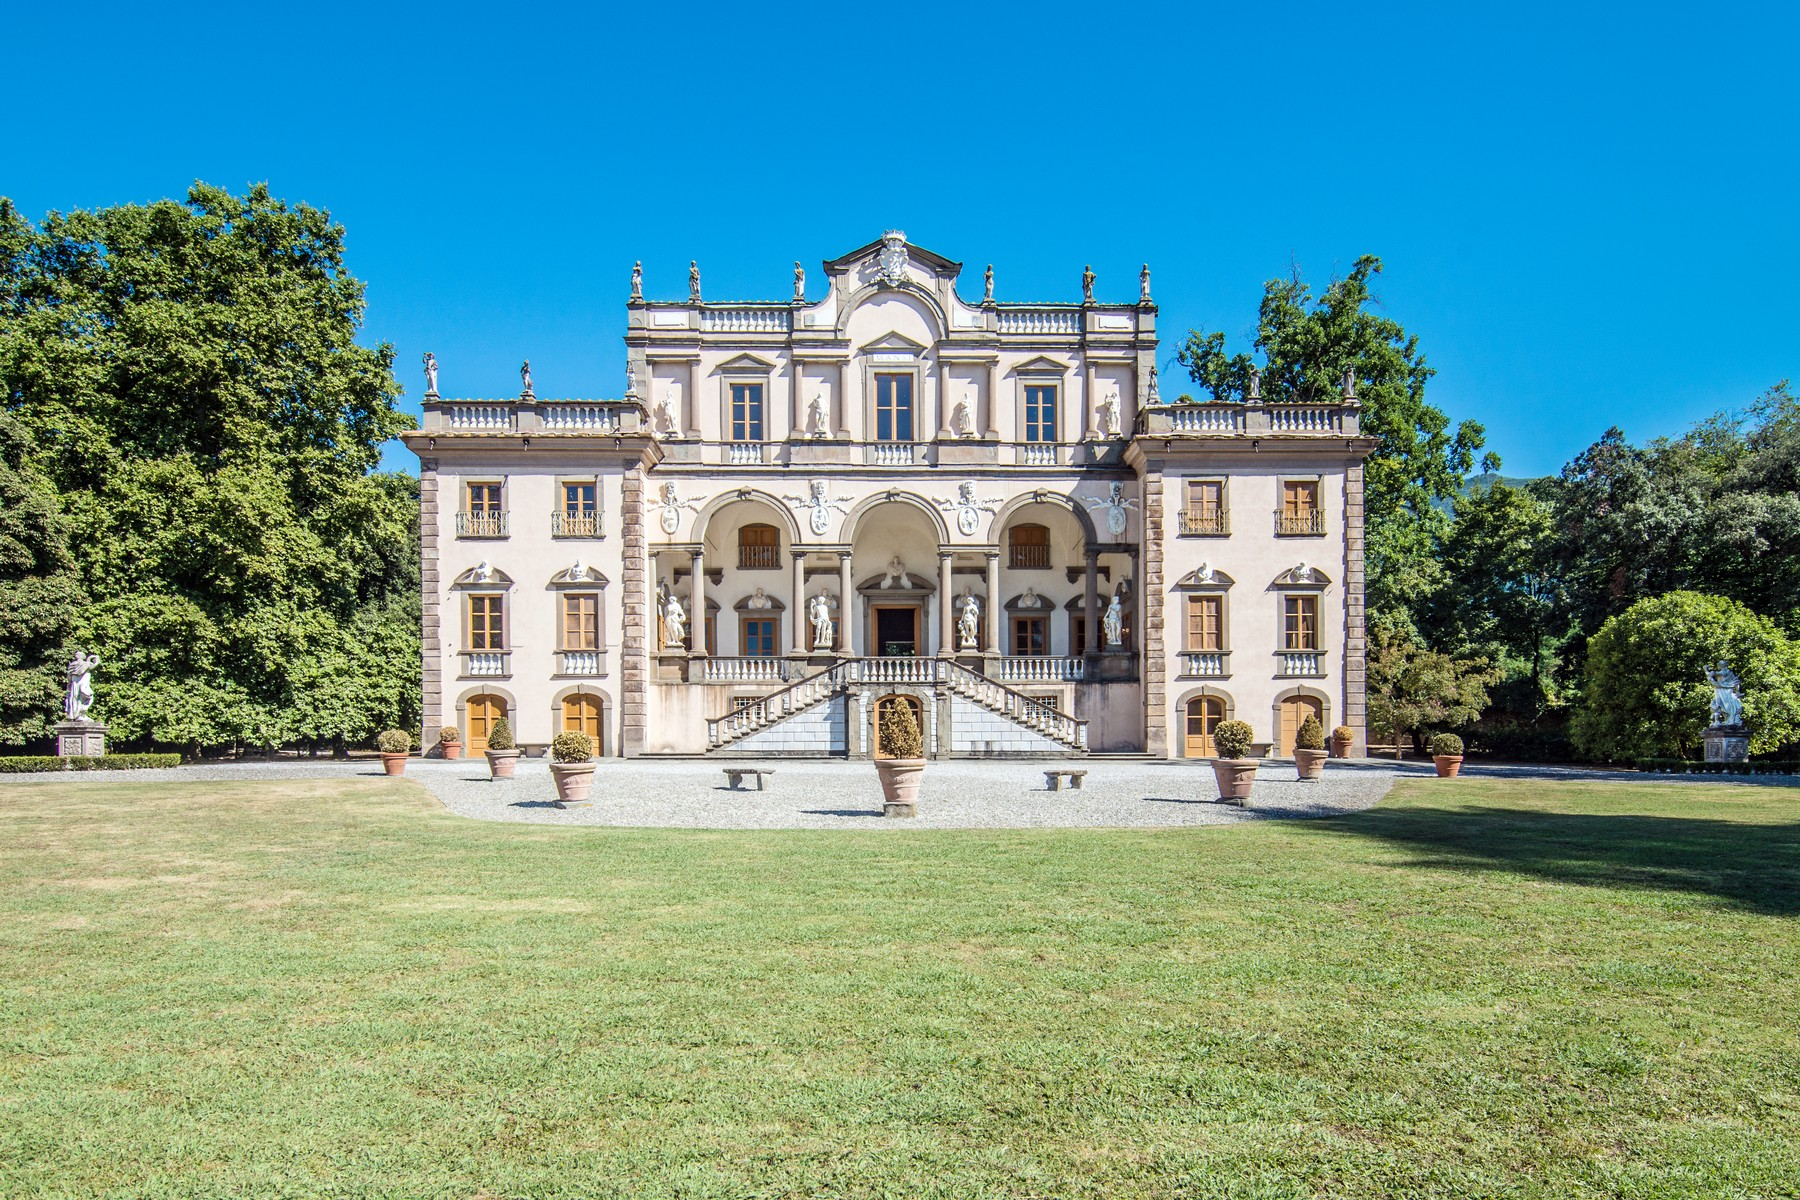 Single Family Home for Sale at Luxury historic Mansion in Lucca Capannori Lucca, Lucca, 55018 Tuscany, Italy